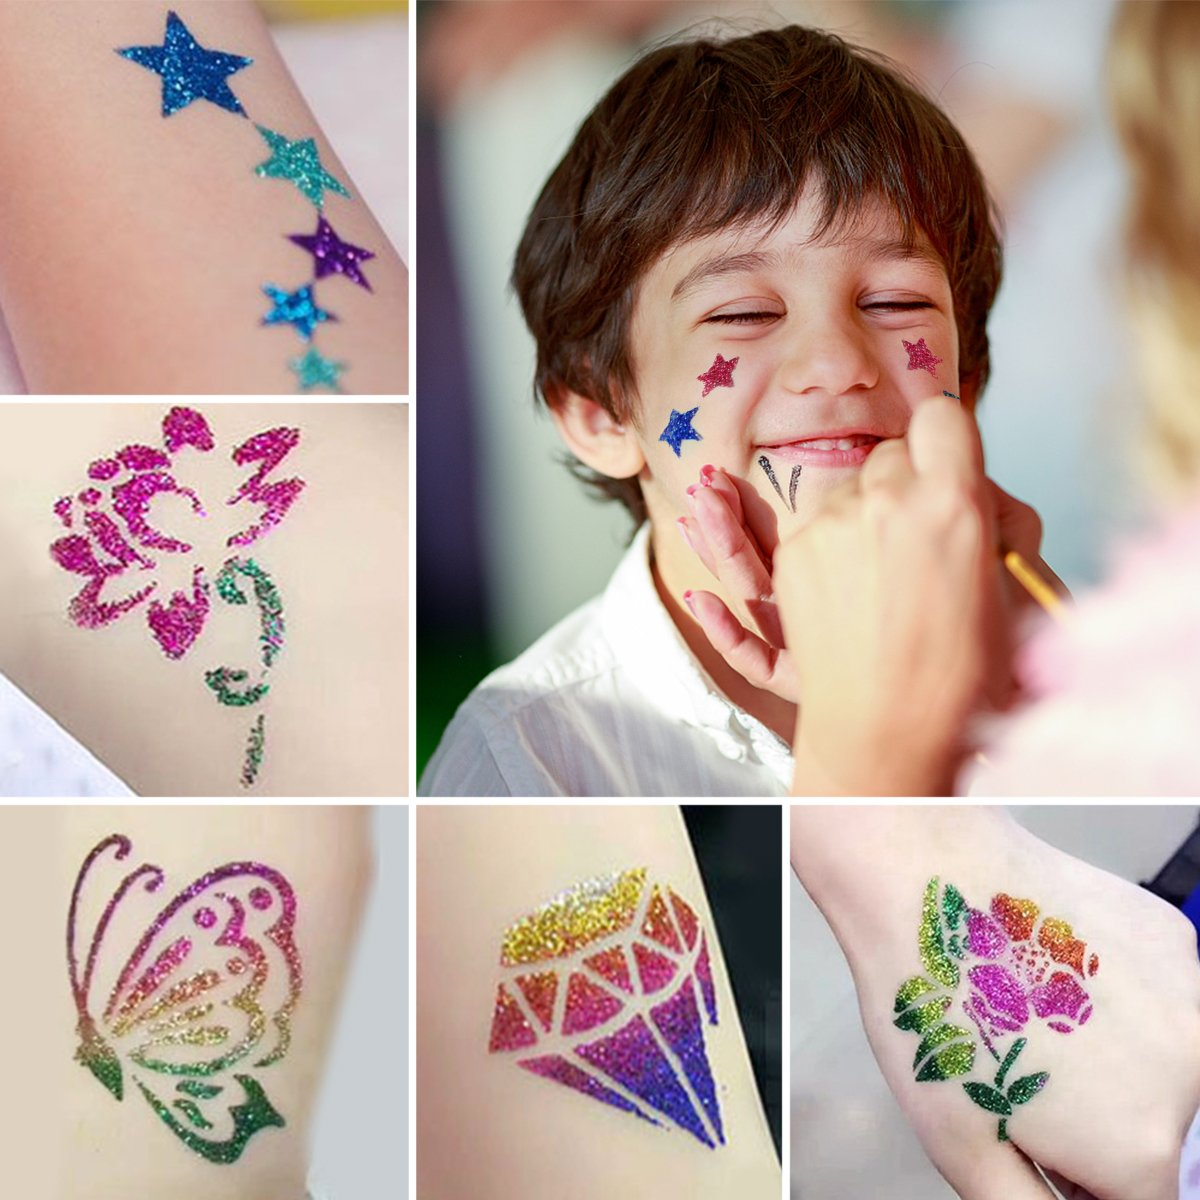 Skymore Glitter Tattoo Kit,Temporary Tattoos Face painting Make Up Body Glitter Body Art Design For Kids Teenager Adult,Halloween,With 24 Colour Glitter,108 Sheet Uniquely Themed Tattoo Stencil by SKYMORE (Image #4)